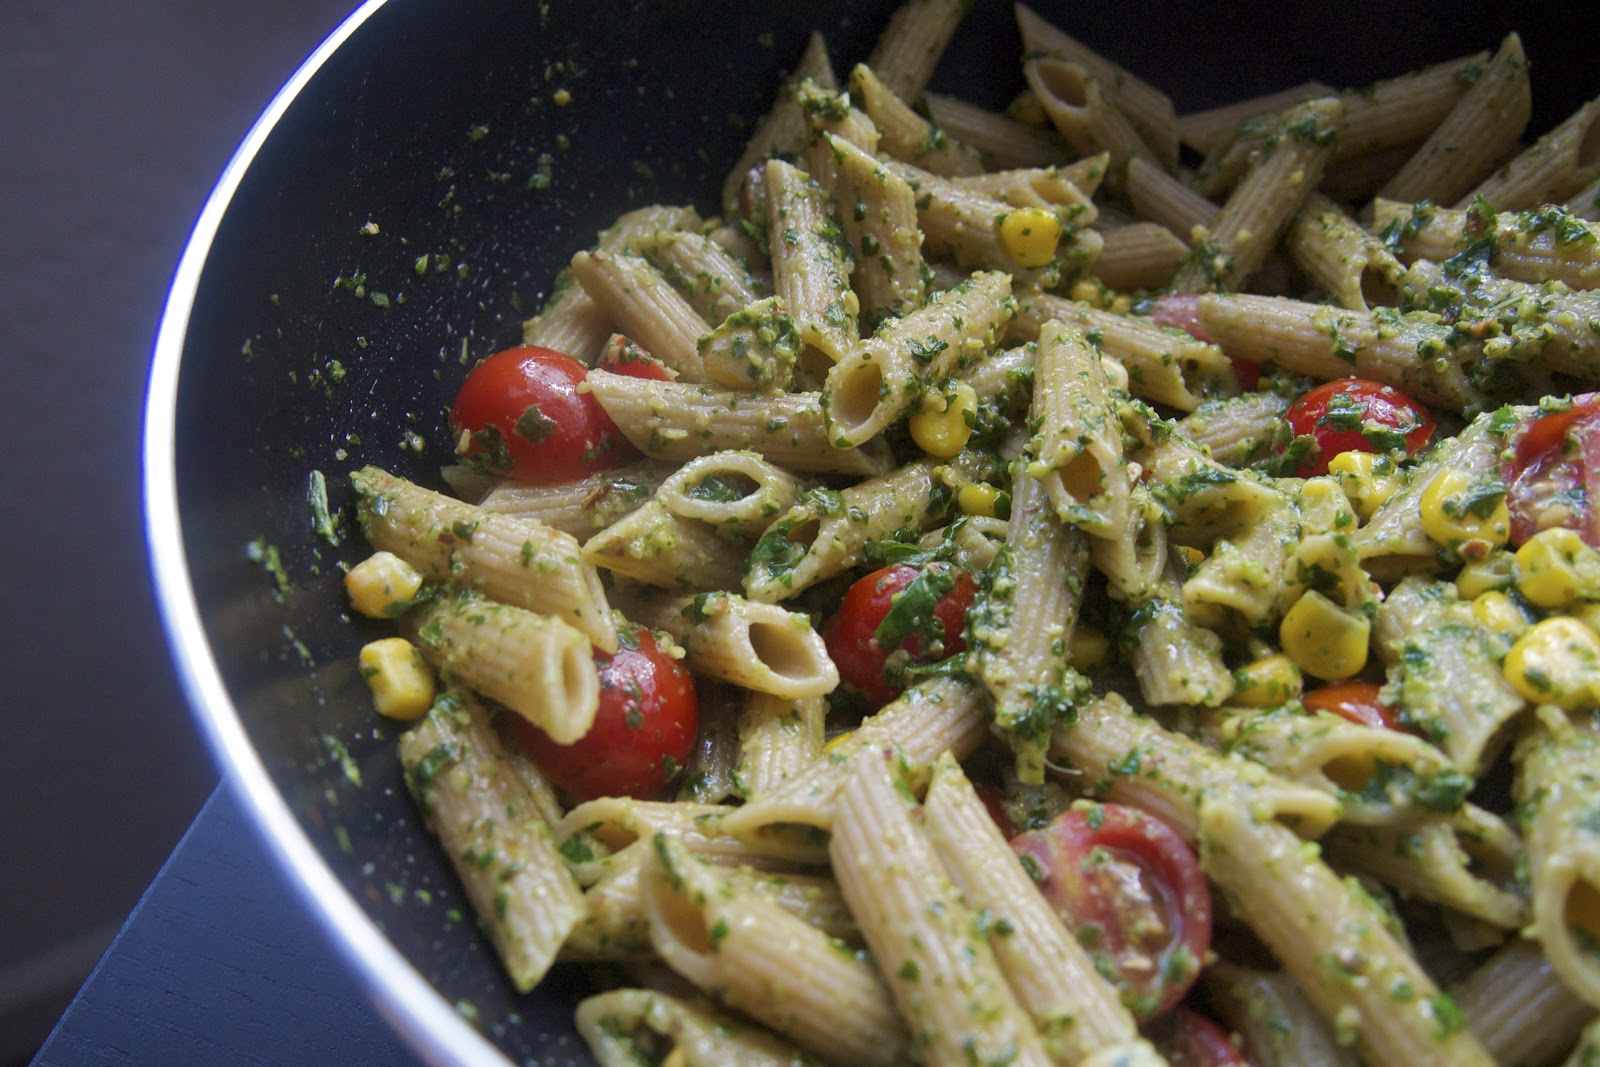 Basil Almond Pesto Pasta with Corn and Cherry Tomatoes